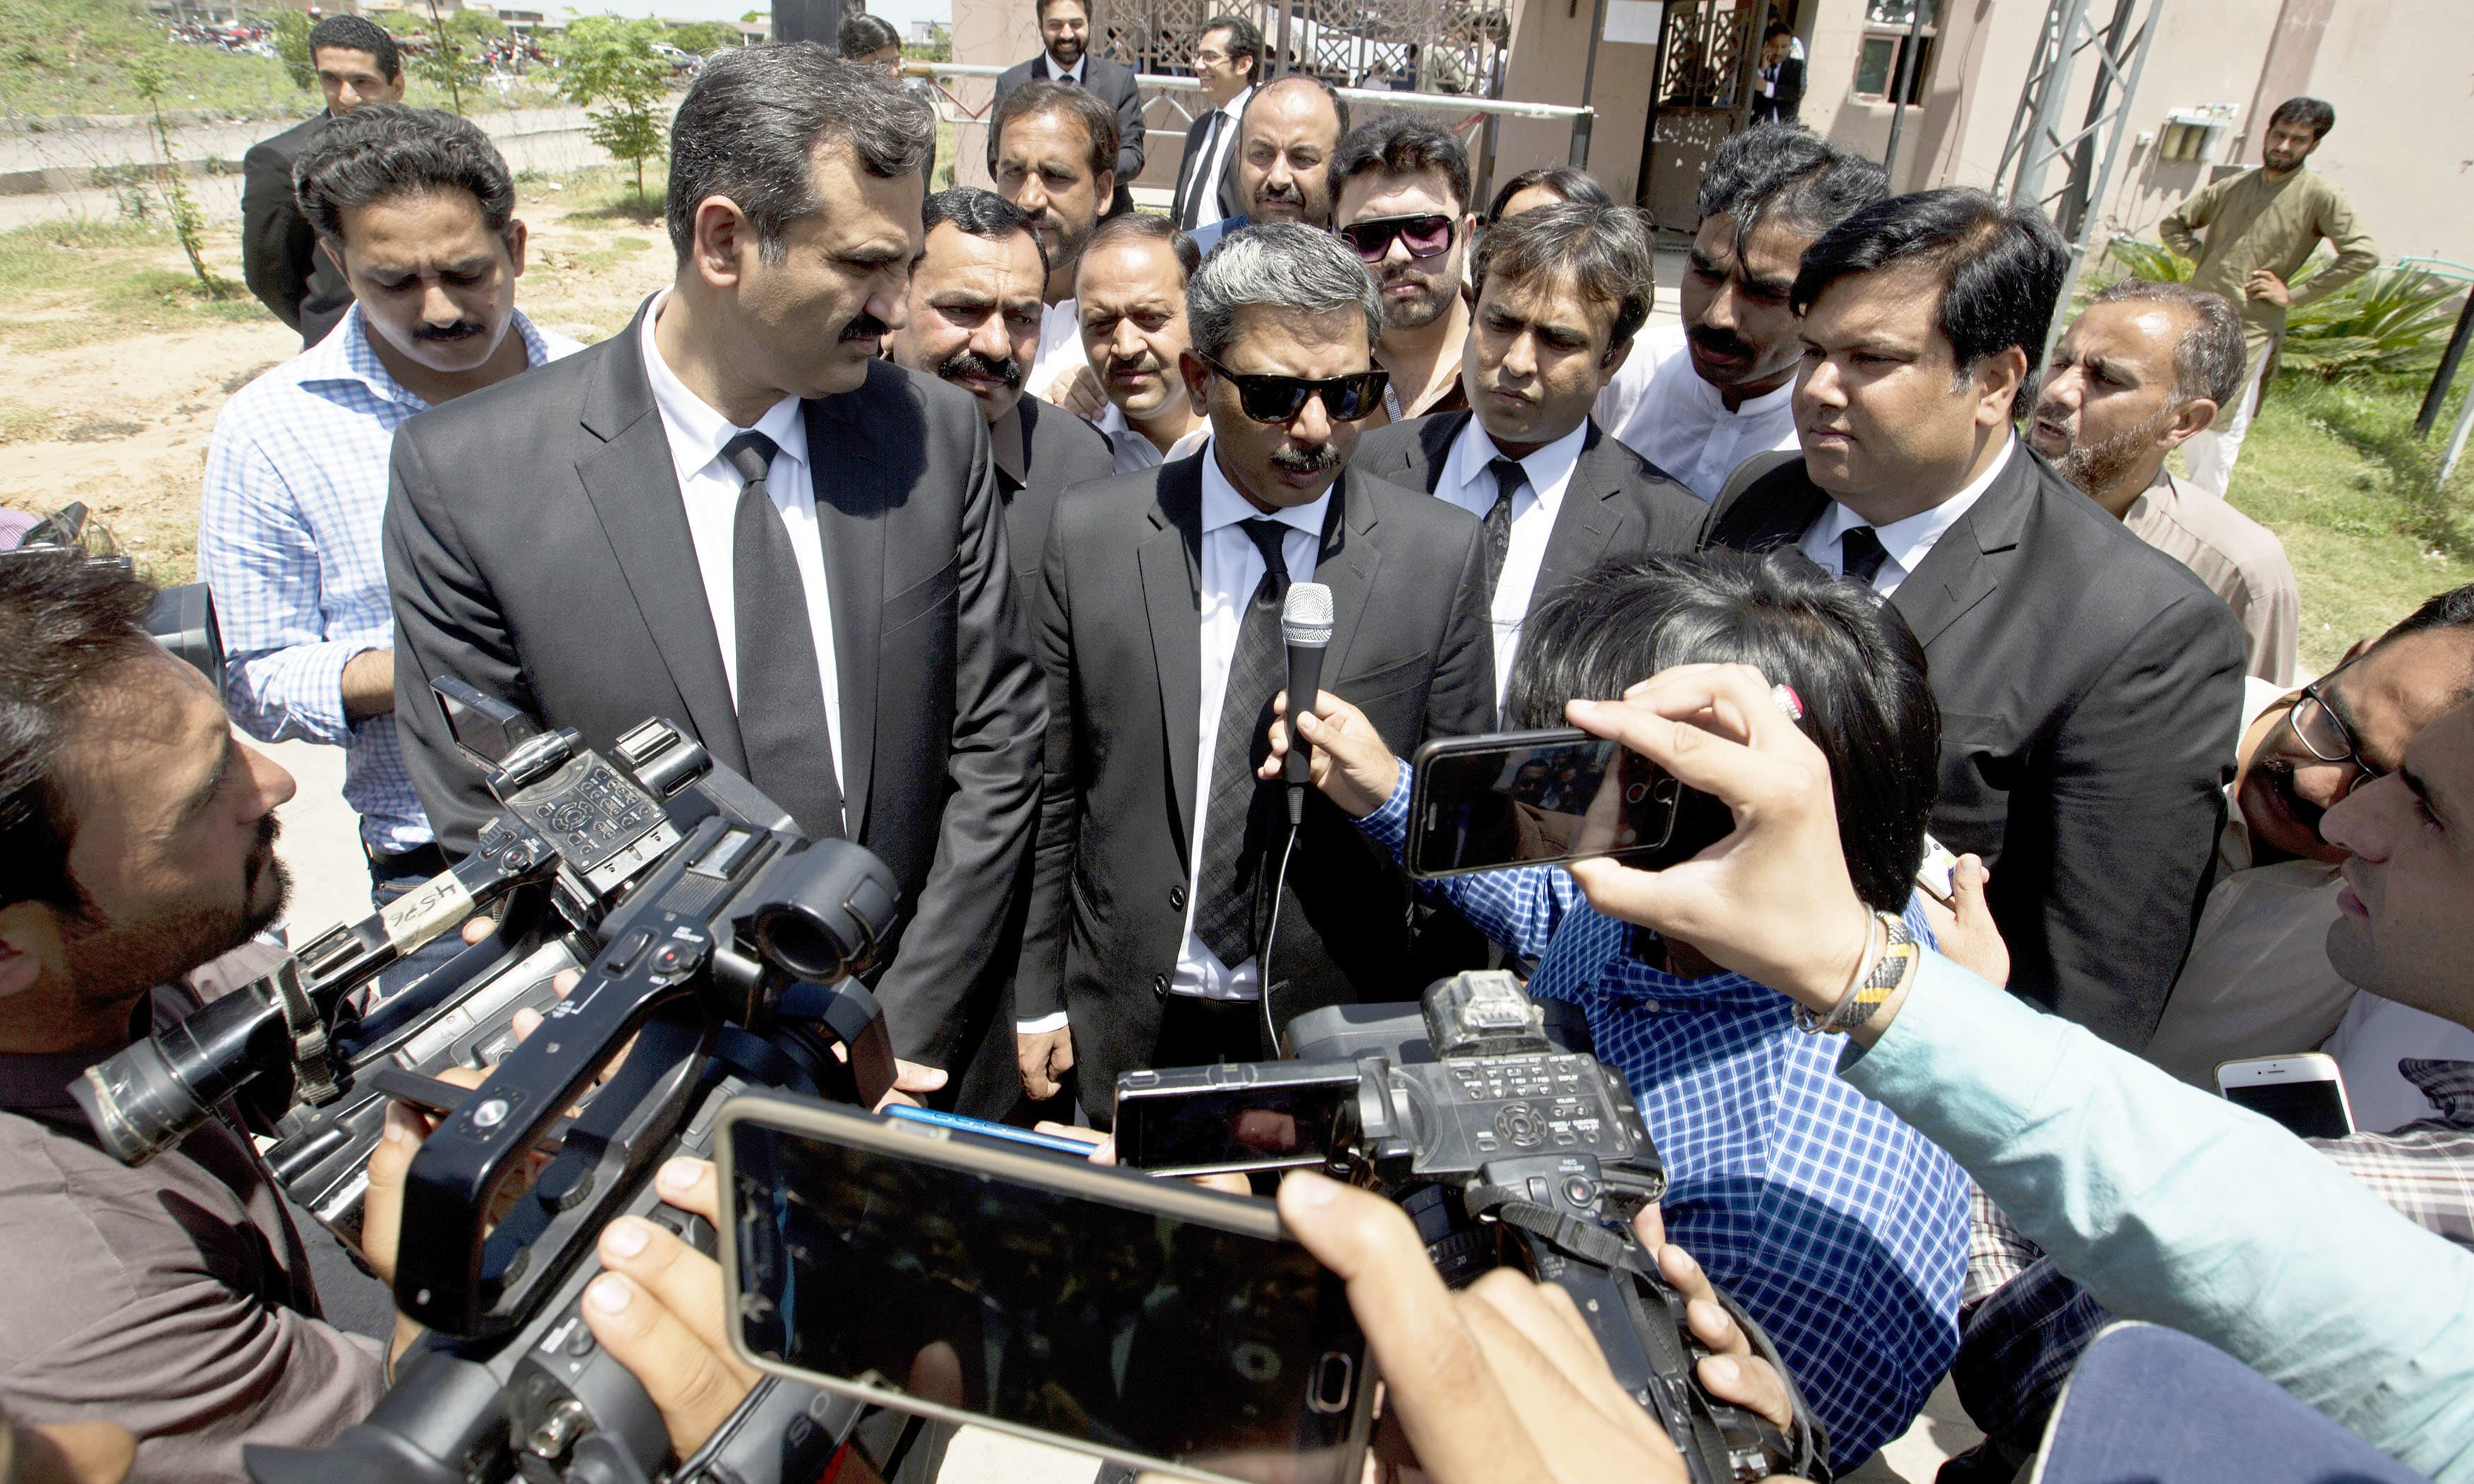 The counsel for Nawaz Sharif briefs journalists outside the court. — AP